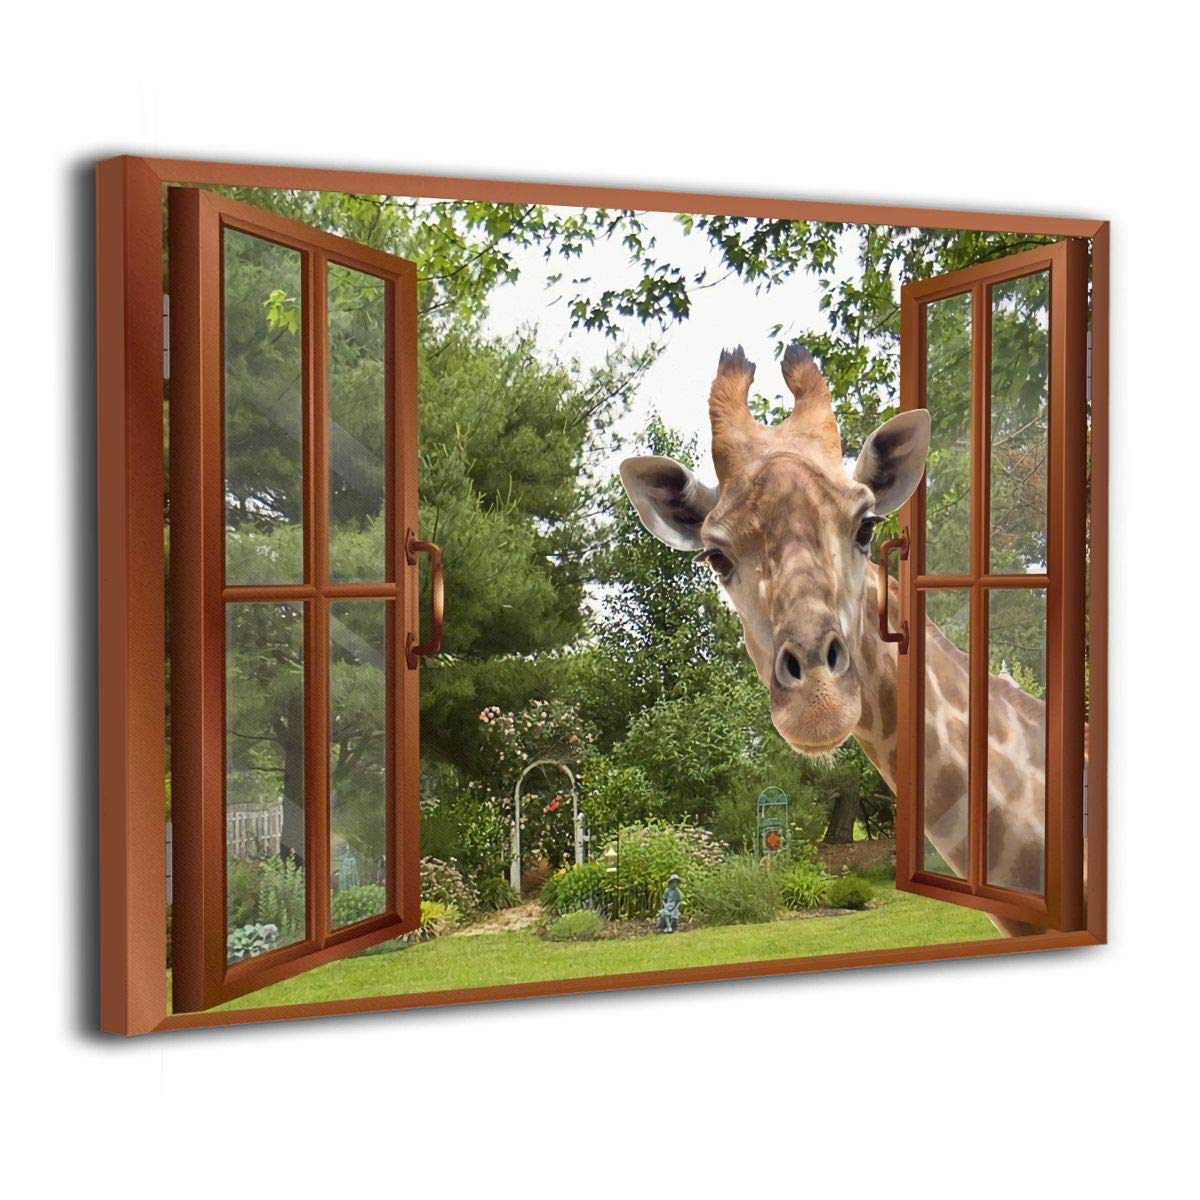 WONDER 4 A Curious Giraffe Sticking Its Head Into an Open Window Home Decor Canvas Wall Art Modern Living Room//Bedroom Decoration Stretched and Ready to Hang